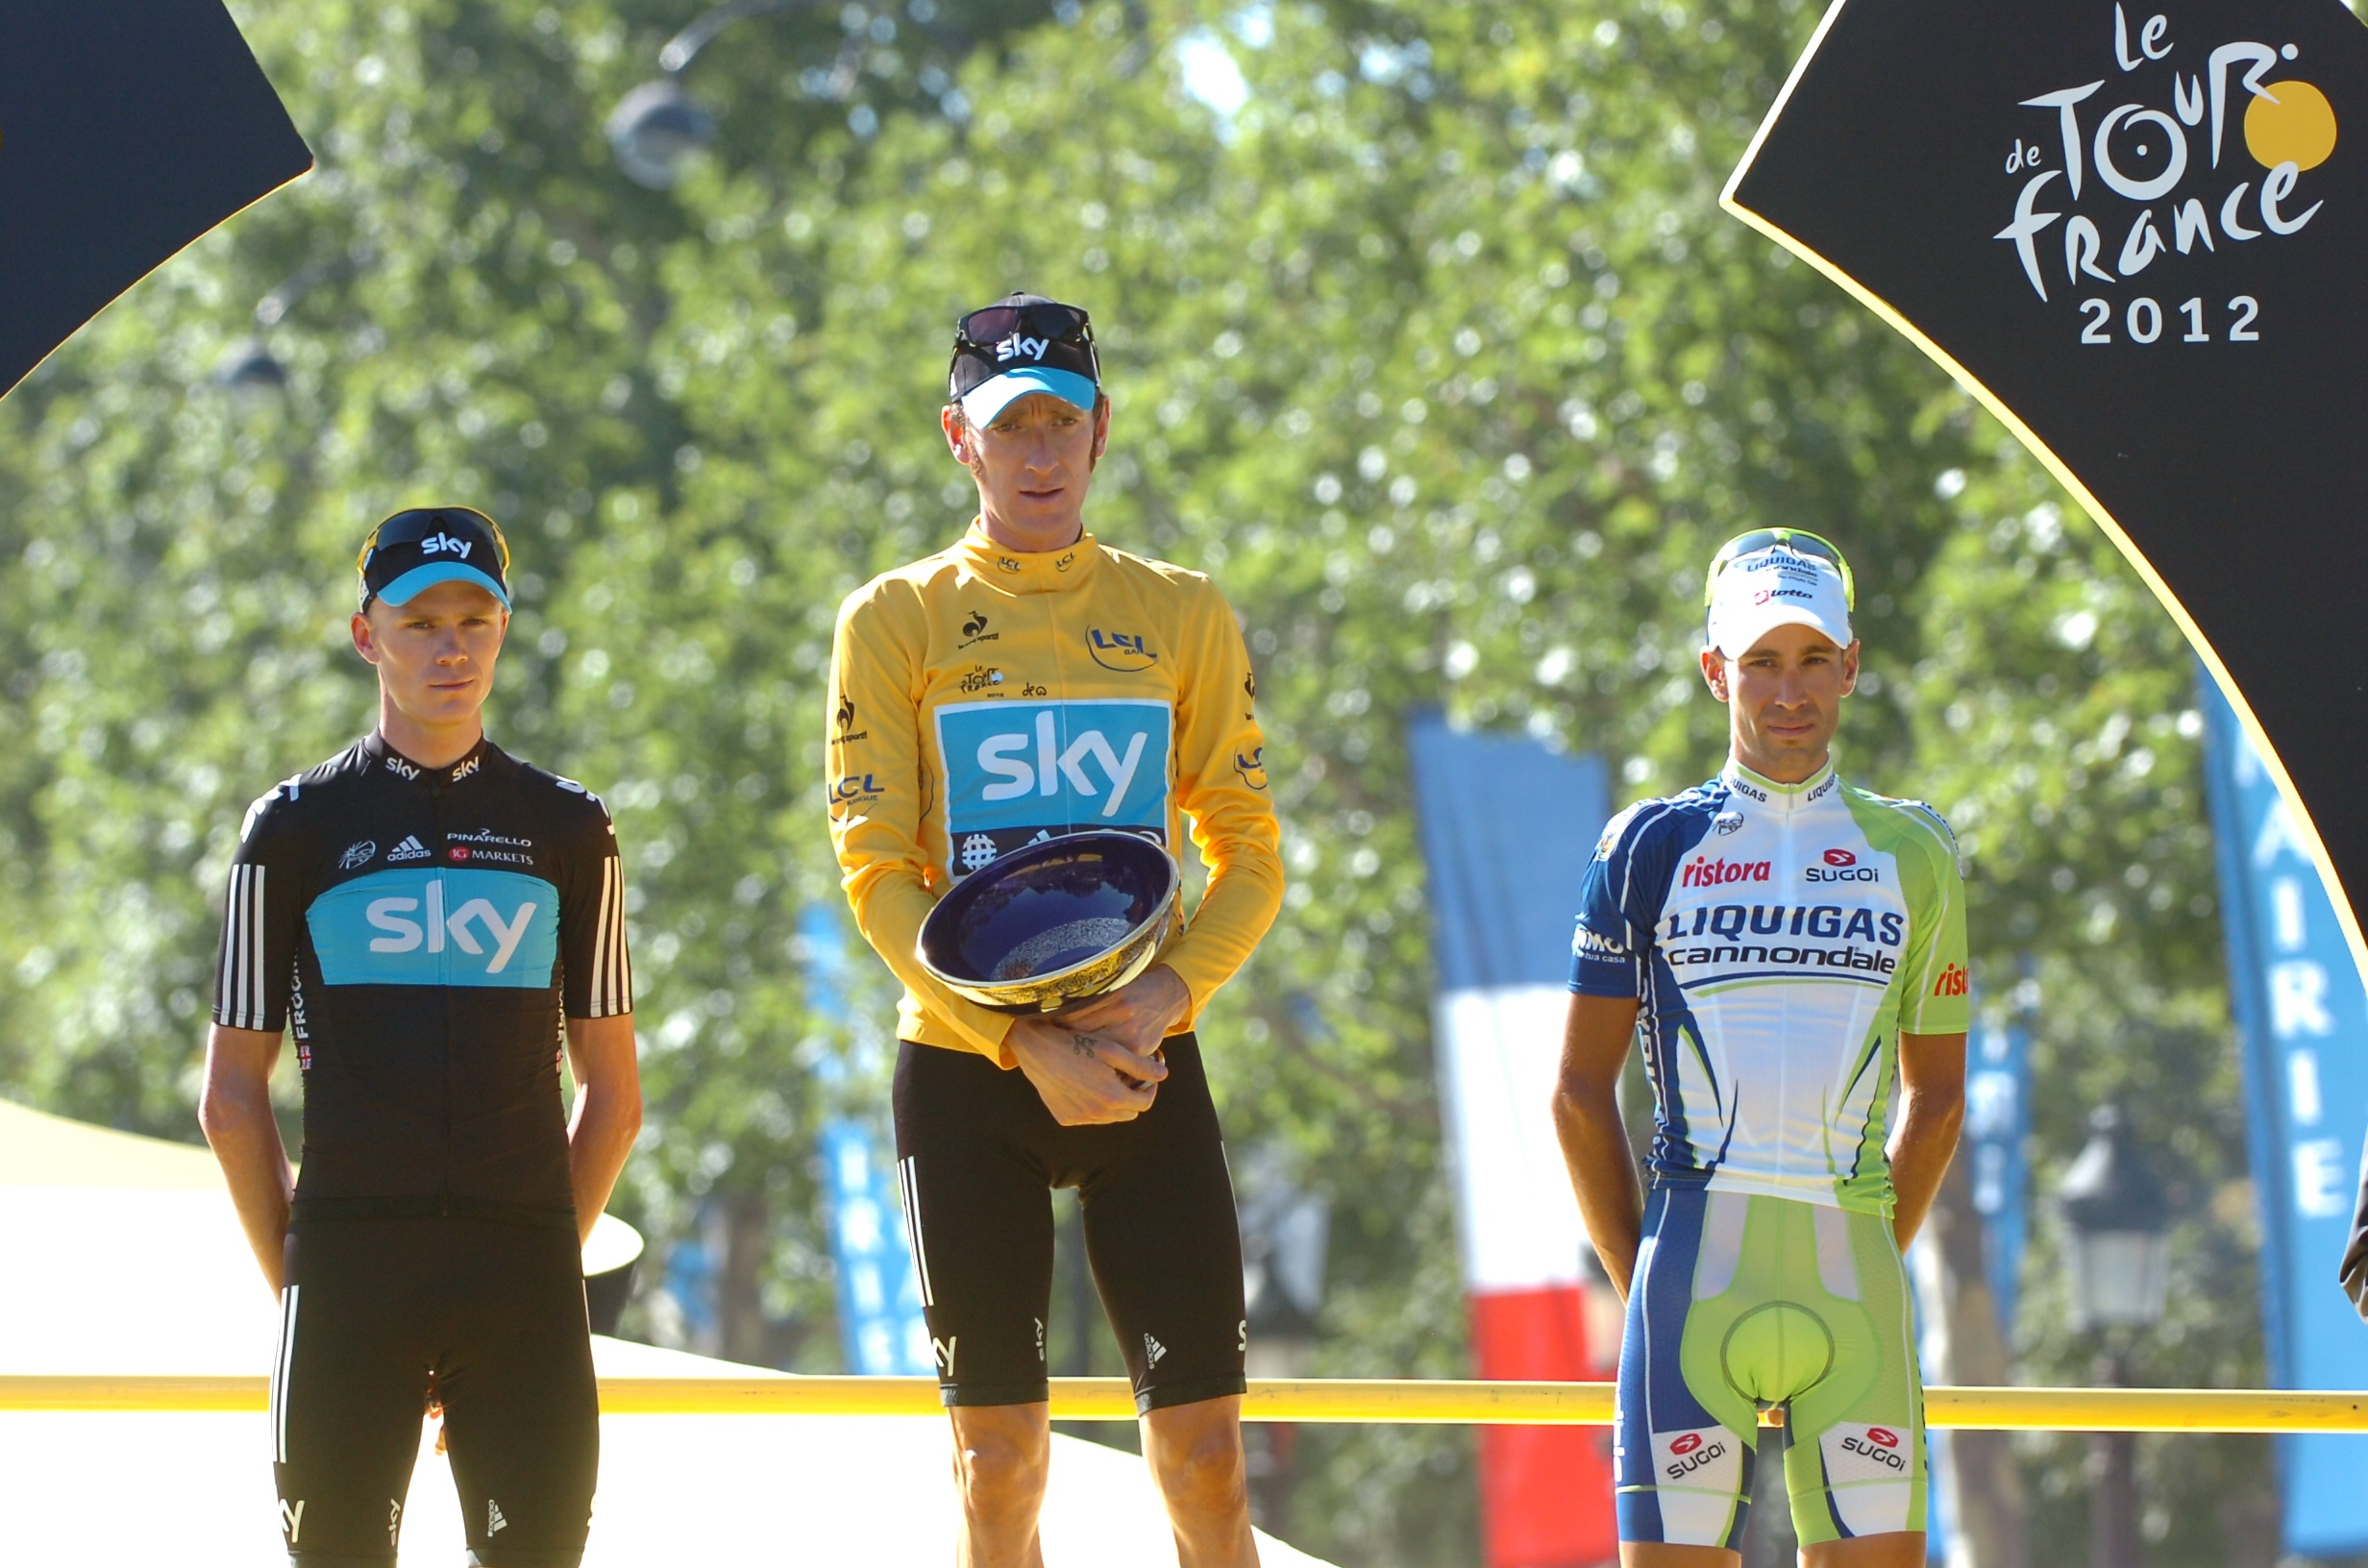 2012, Tour de France, tappa 20 Rambouillet - Paris, Team Sky 2012, Liquigas 2012, Wiggins Bradley, Froome Christopher, Nibali Vincenzo, Paris